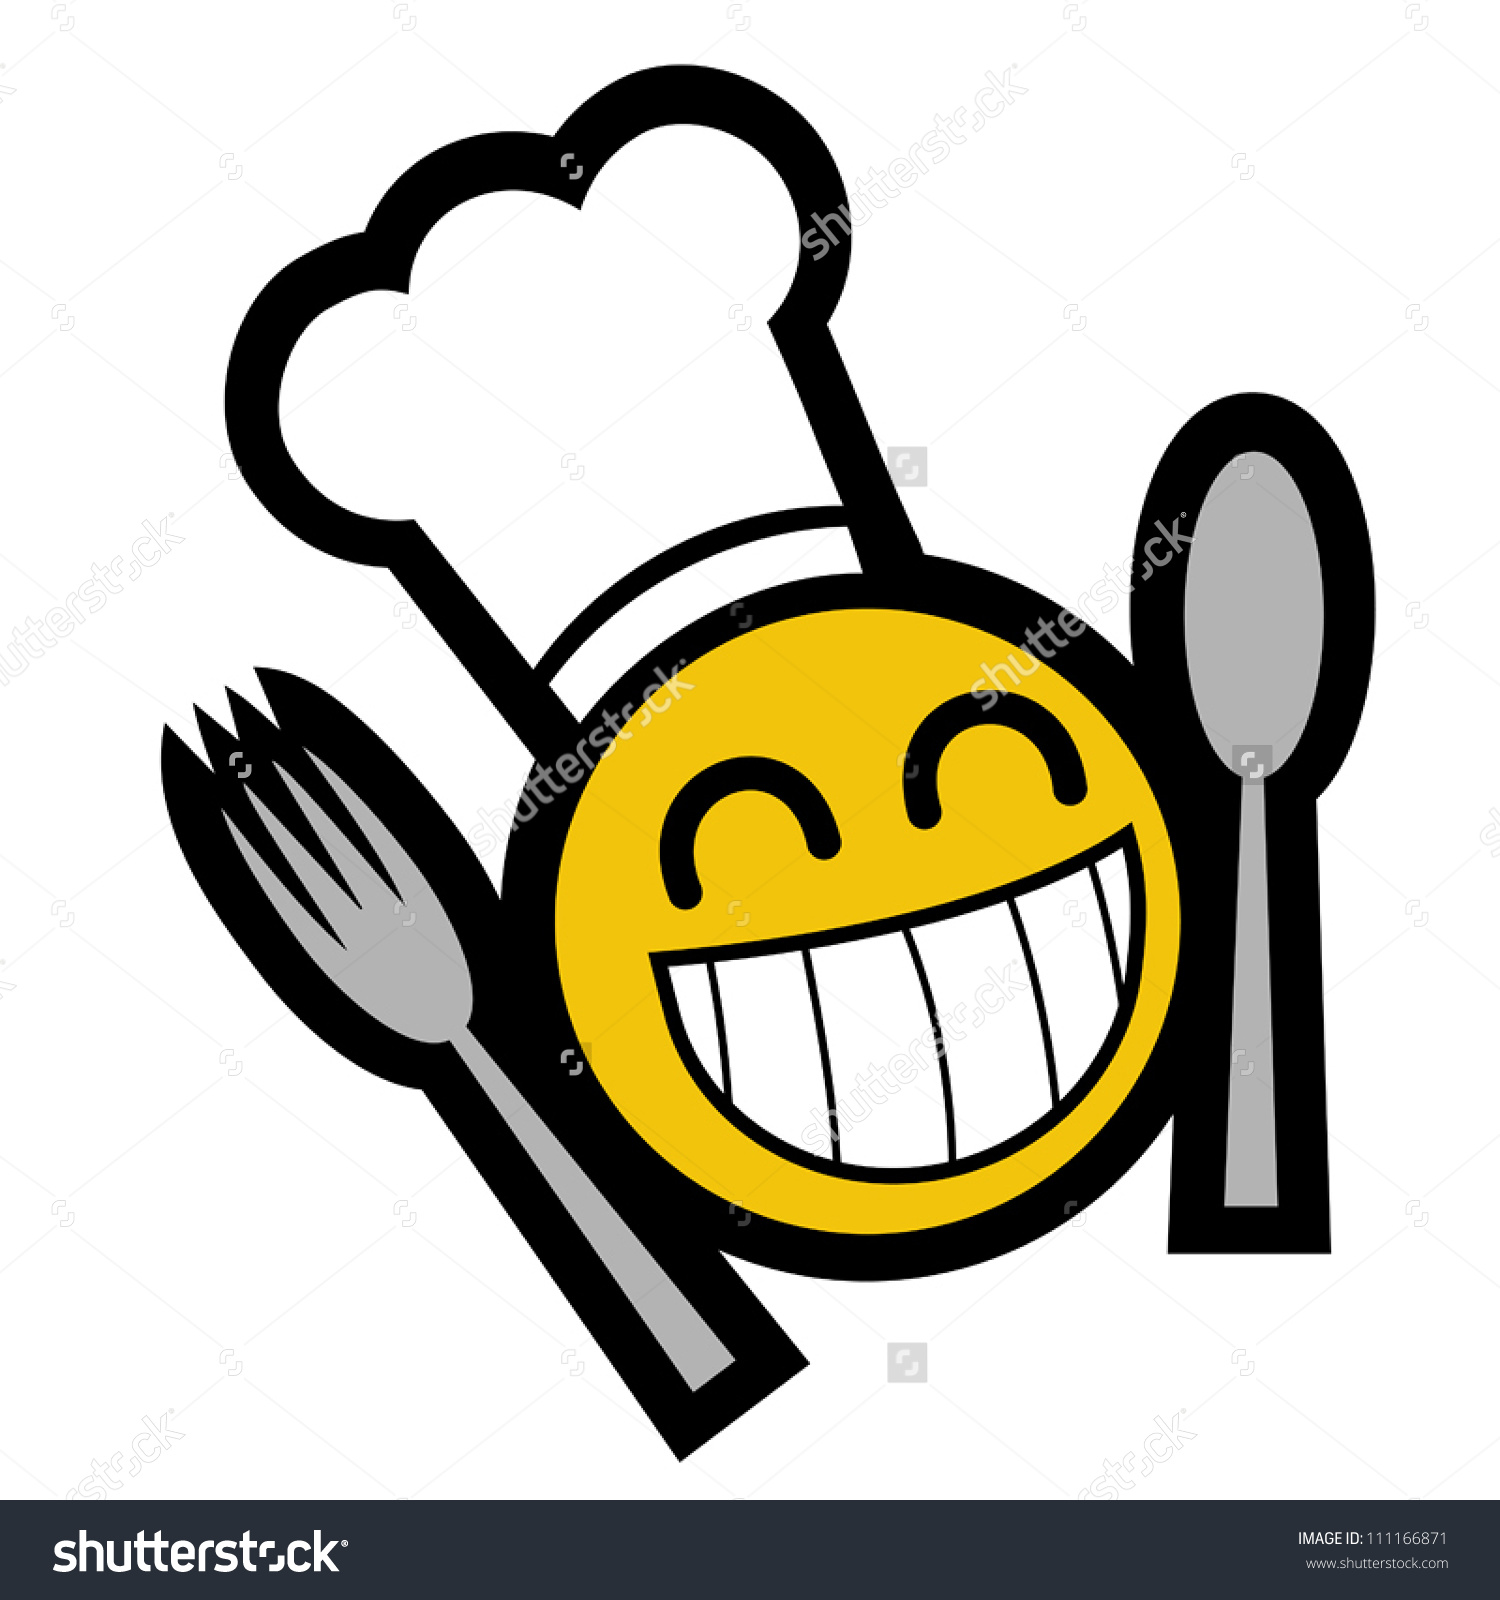 Yummy expression clipart.